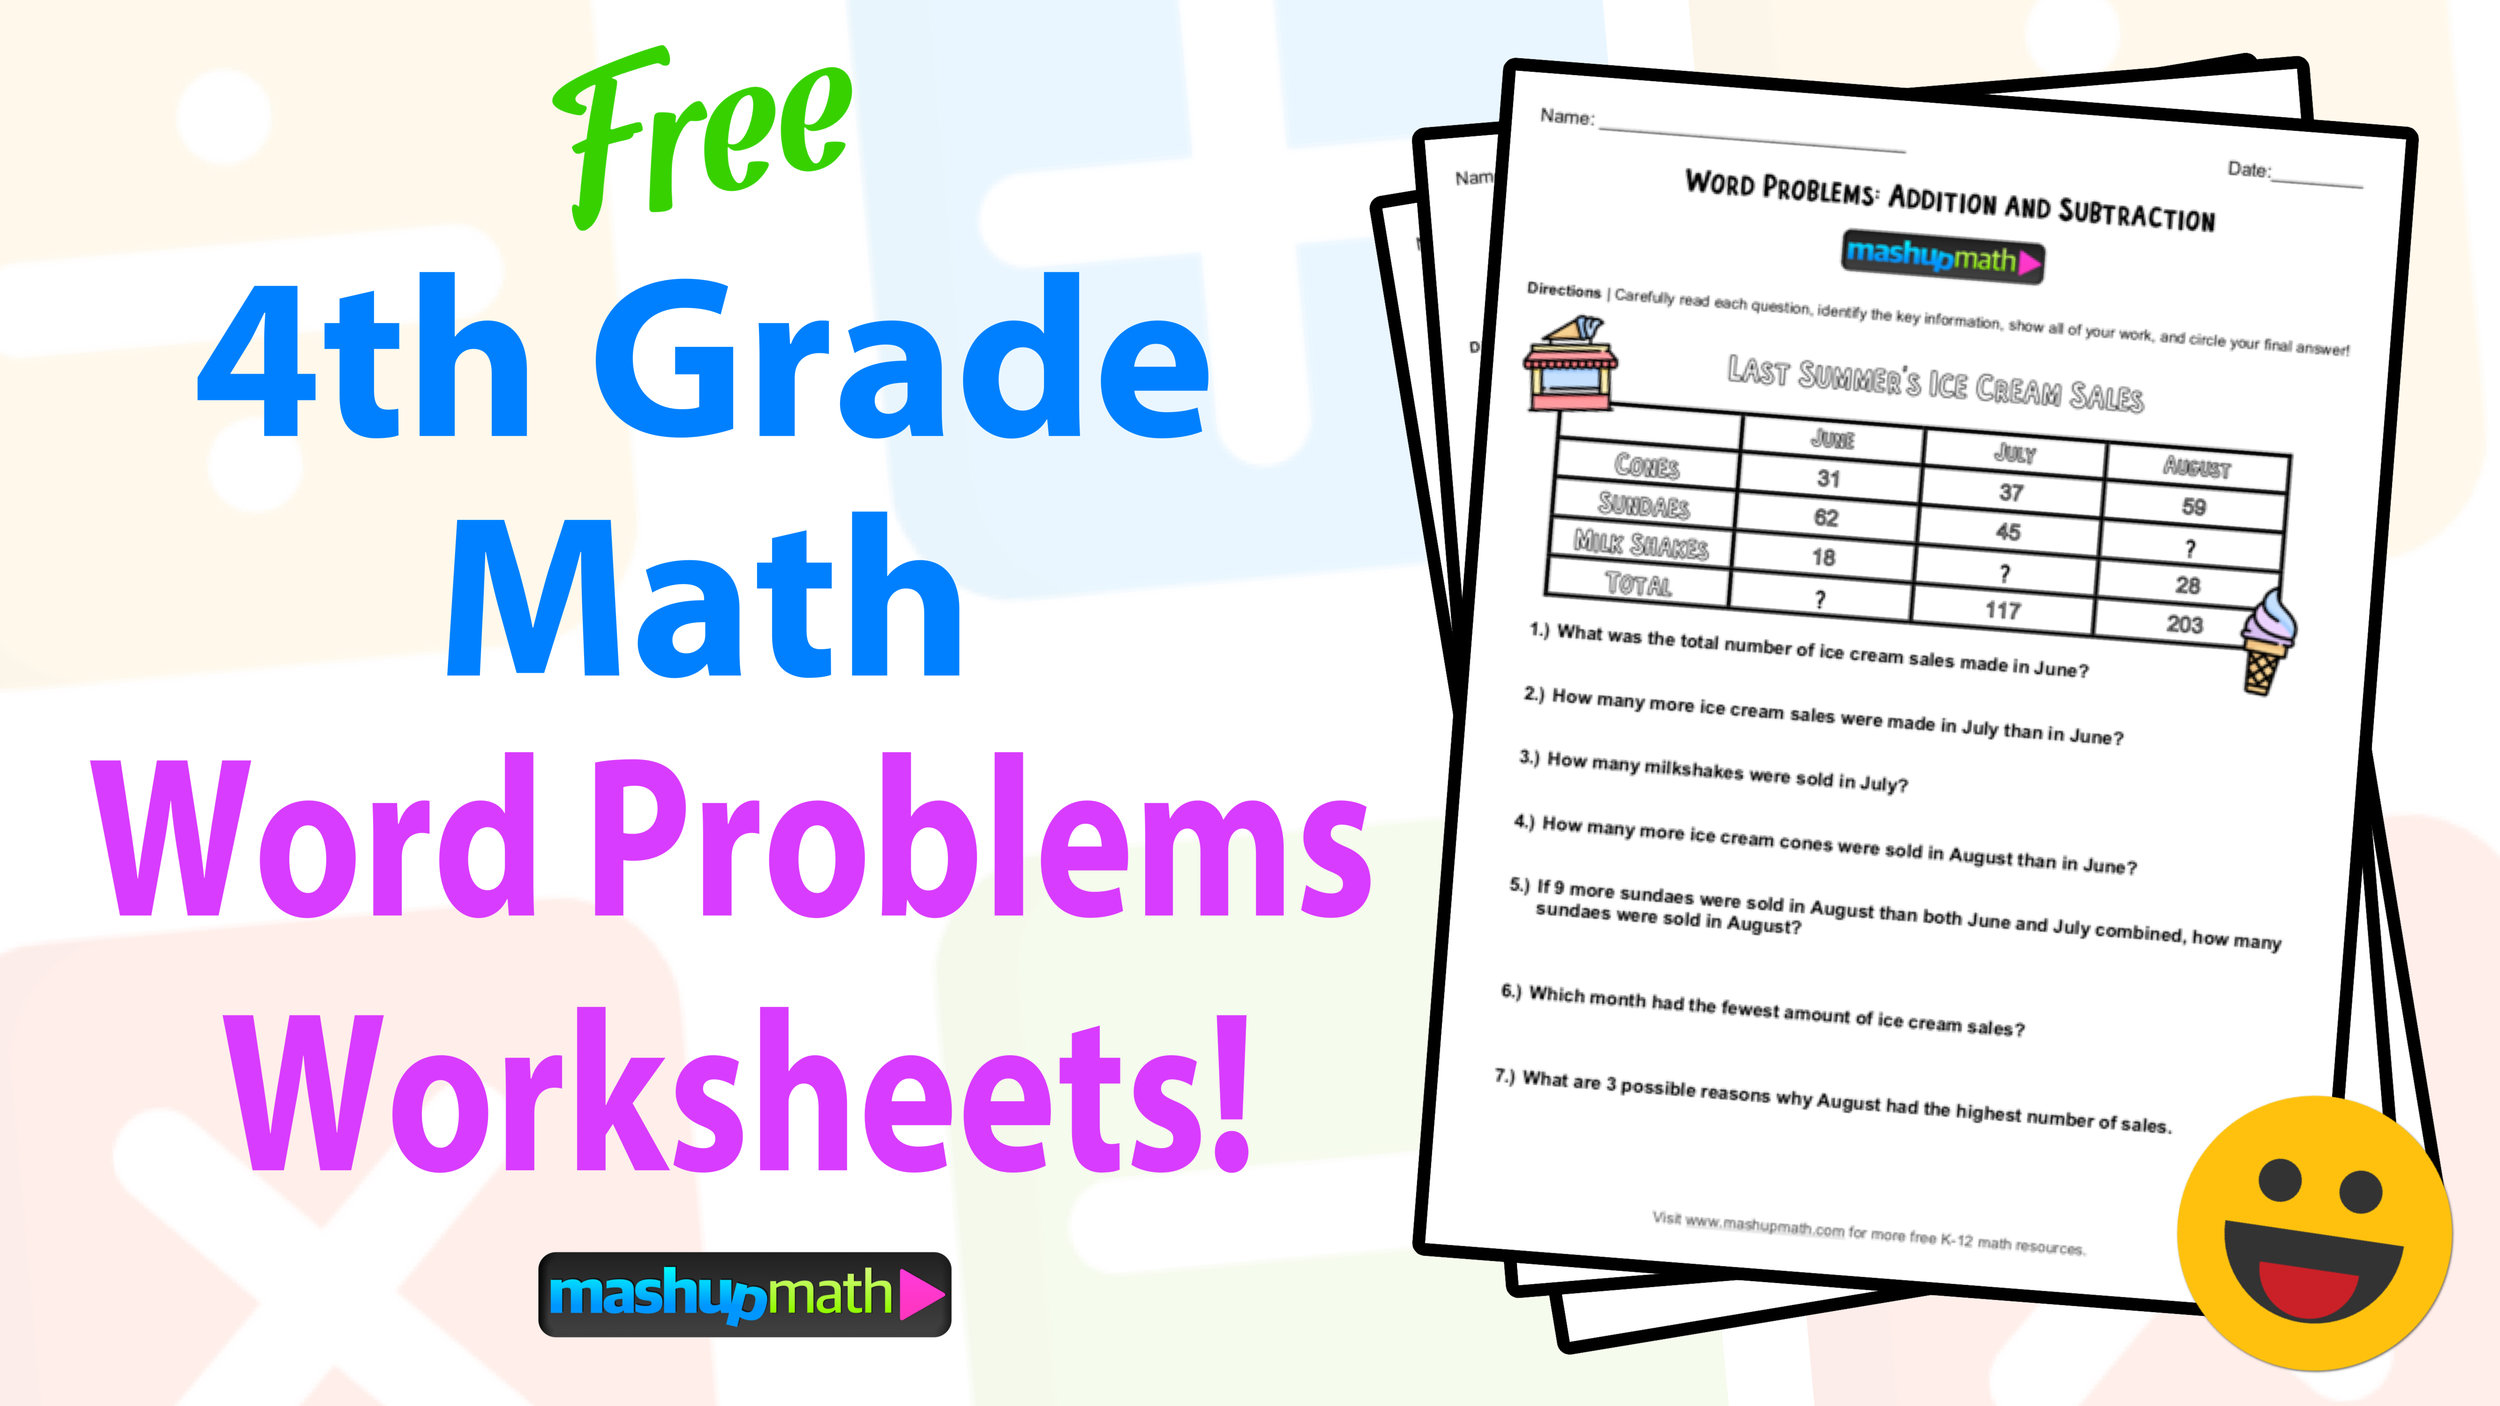 4th Grade Math Word Problems: Free Worksheets with Answers ...